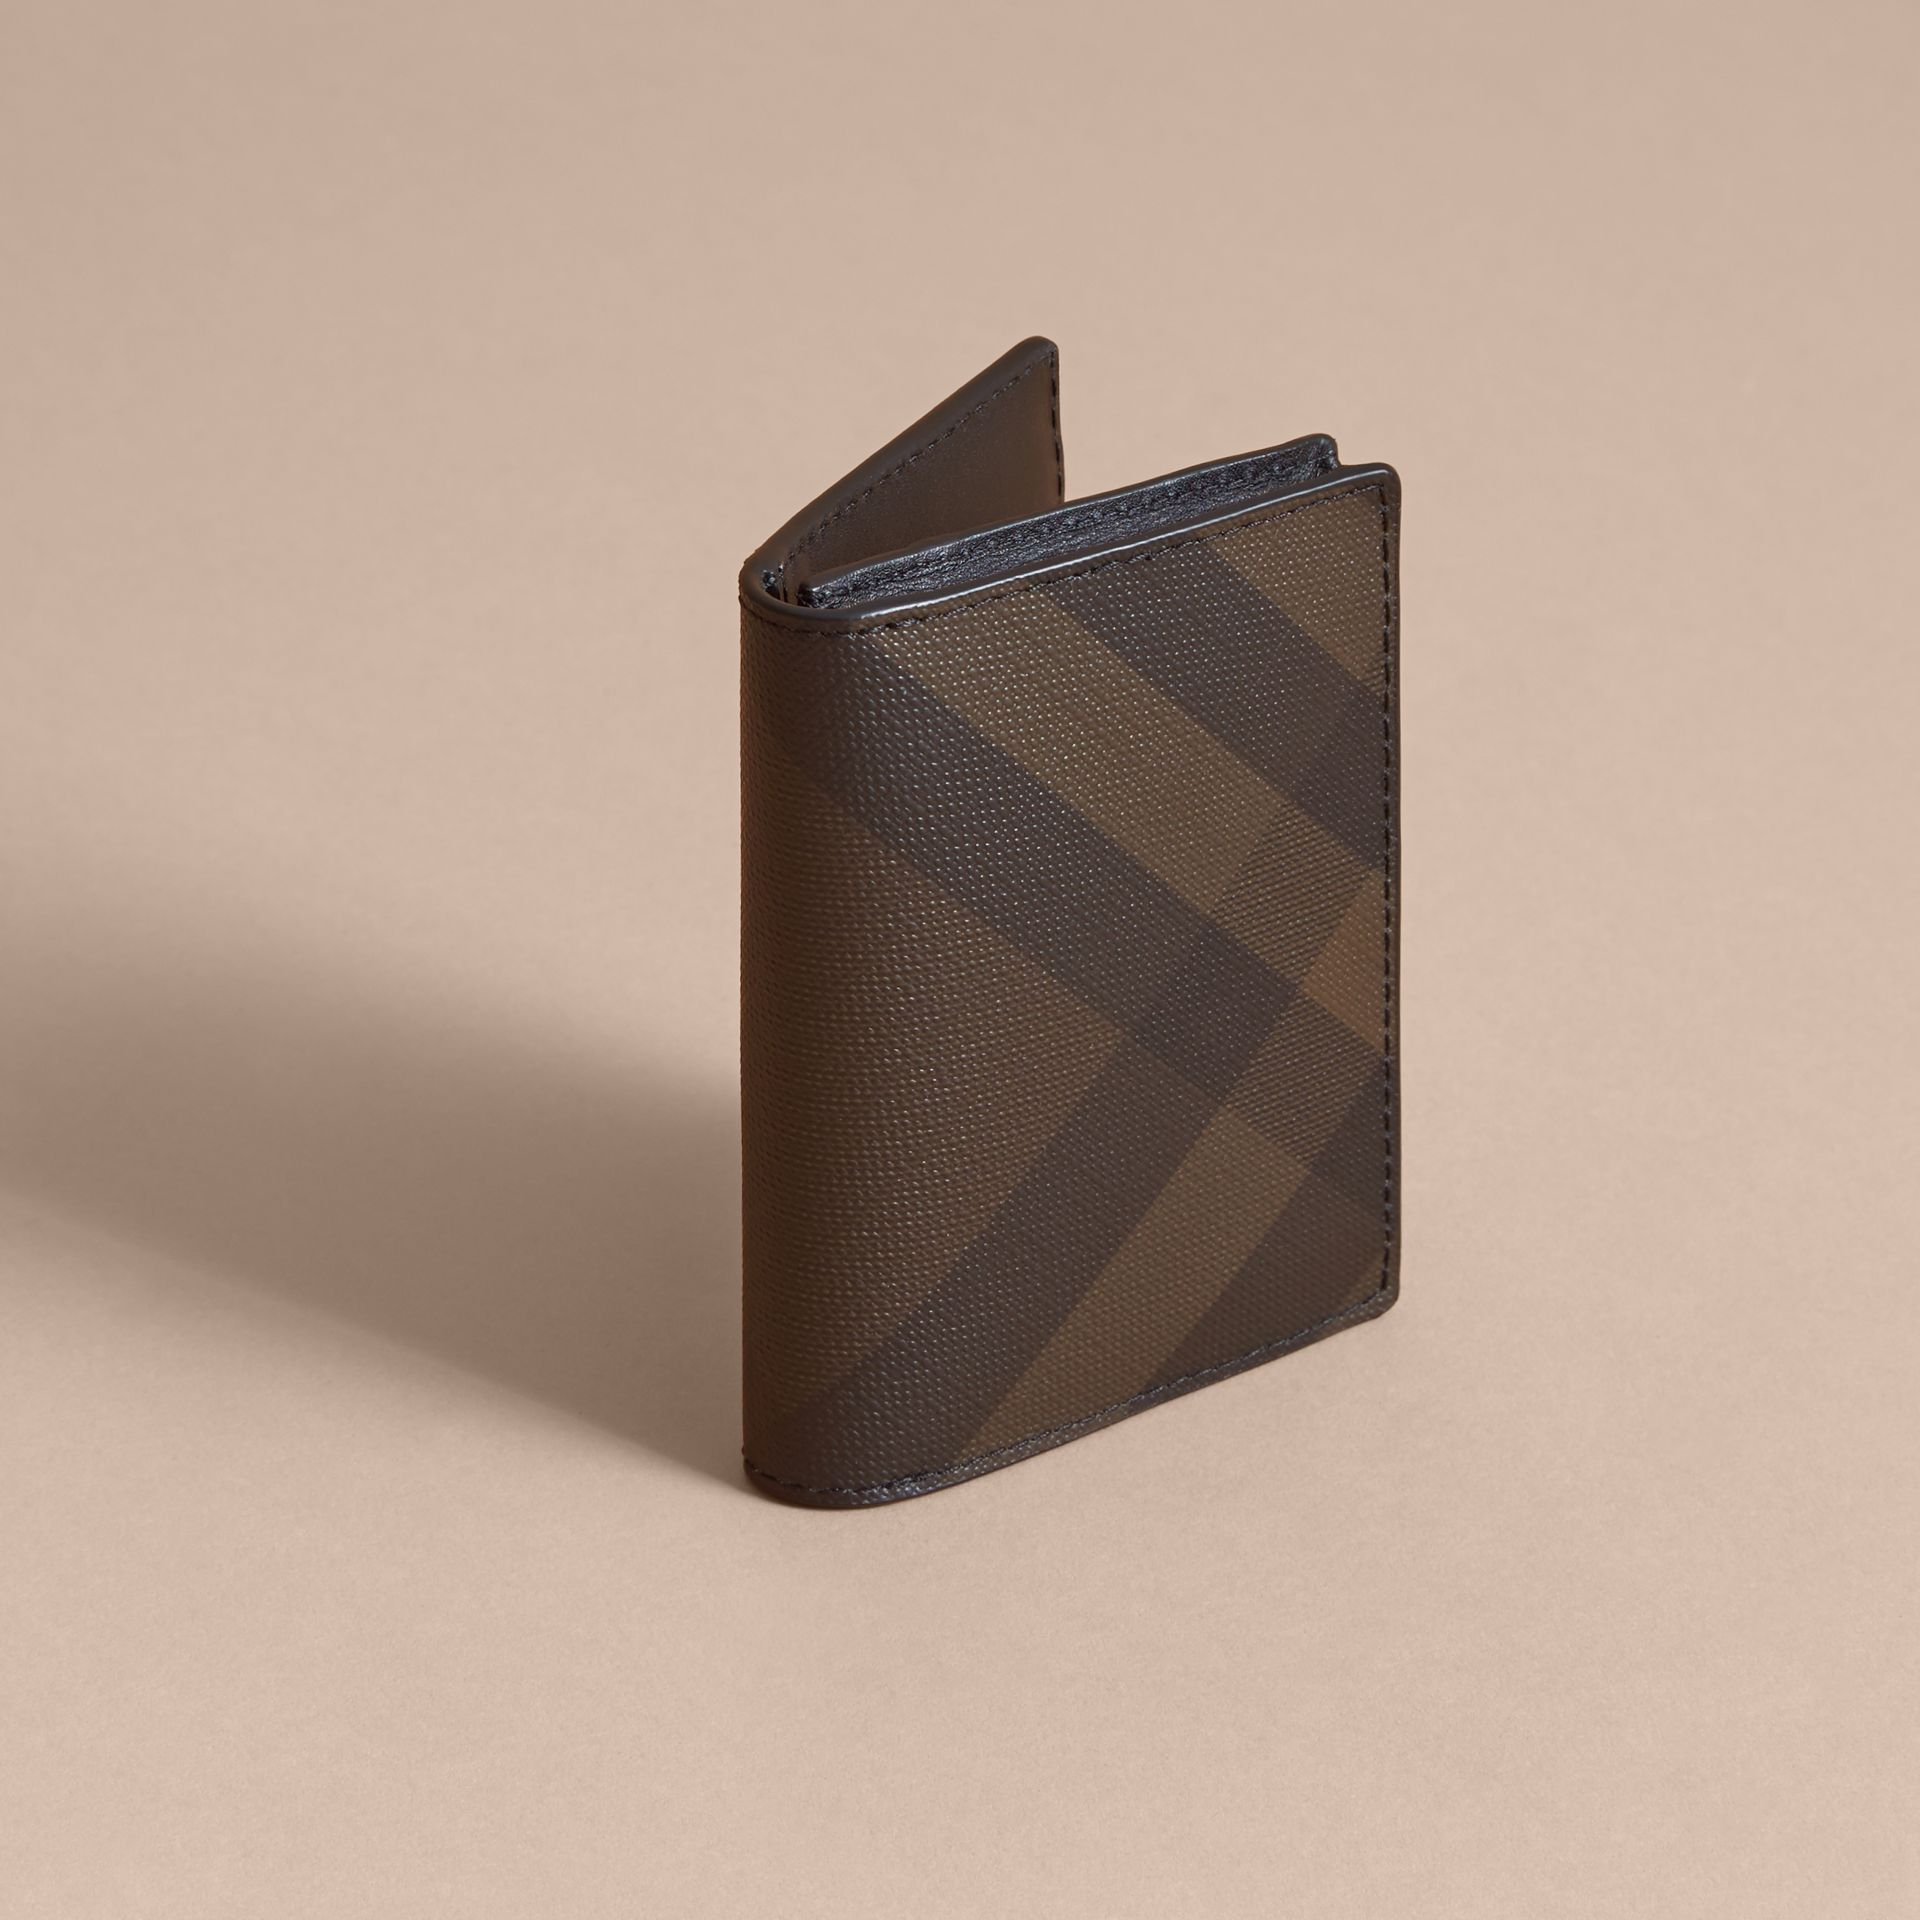 London Check and Leather Folding Card Case in Chocolate/black - Men | Burberry United Kingdom - gallery image 2